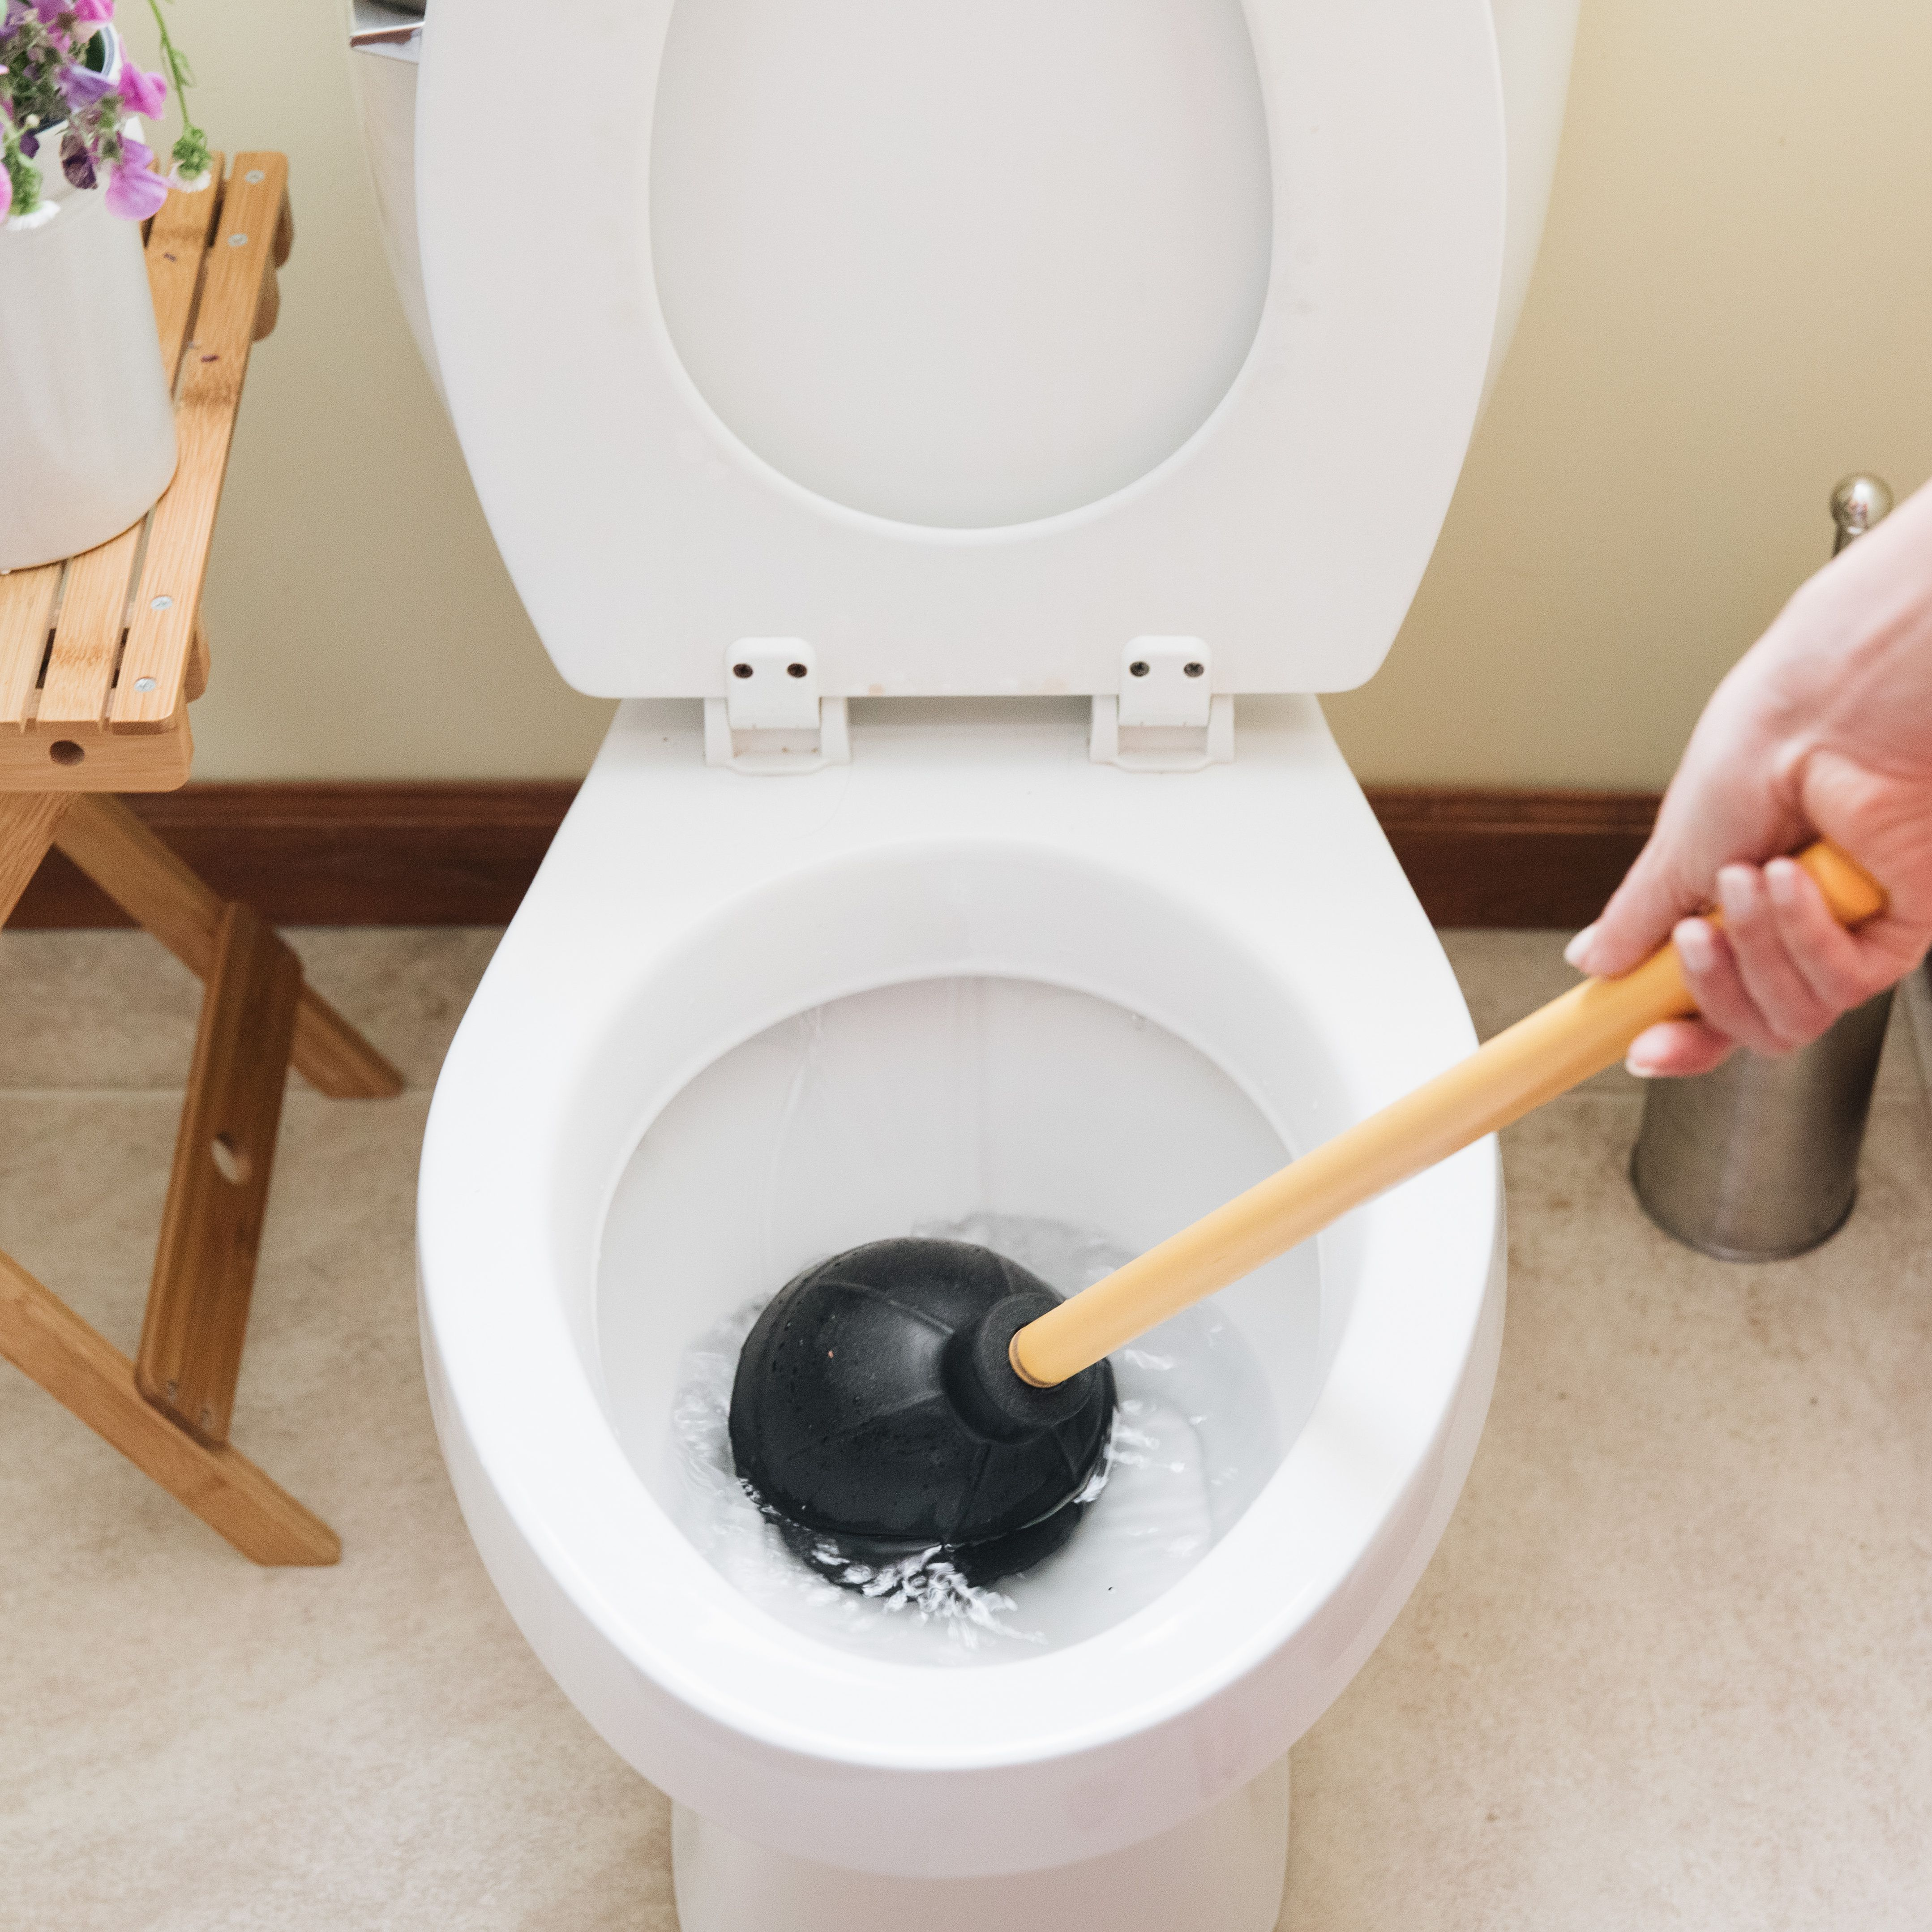 5 Reasons Why Toilets Get Clogged